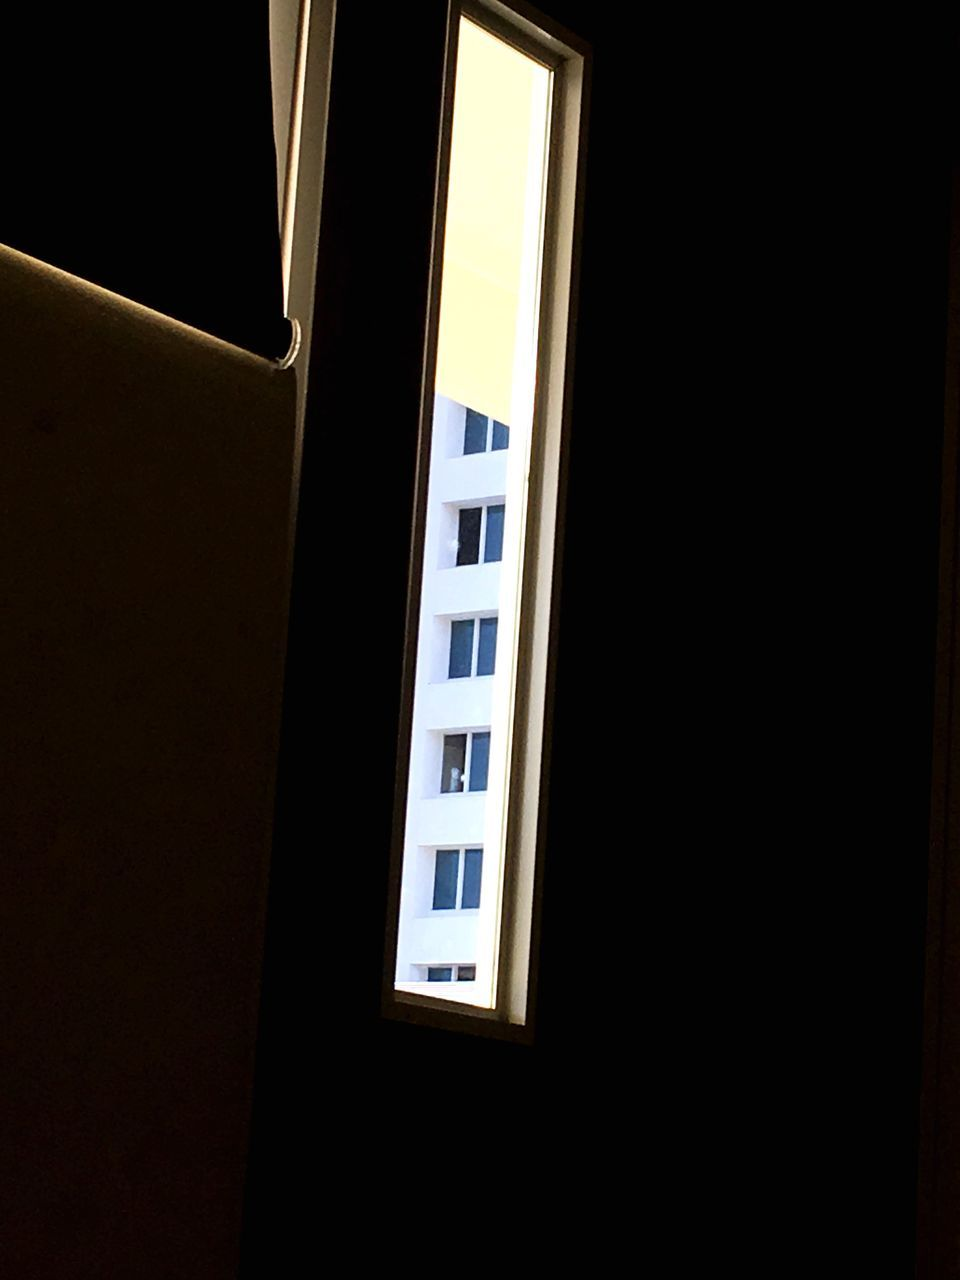 window, no people, black background, architecture, built structure, low angle view, indoors, night, illuminated, building exterior, close-up